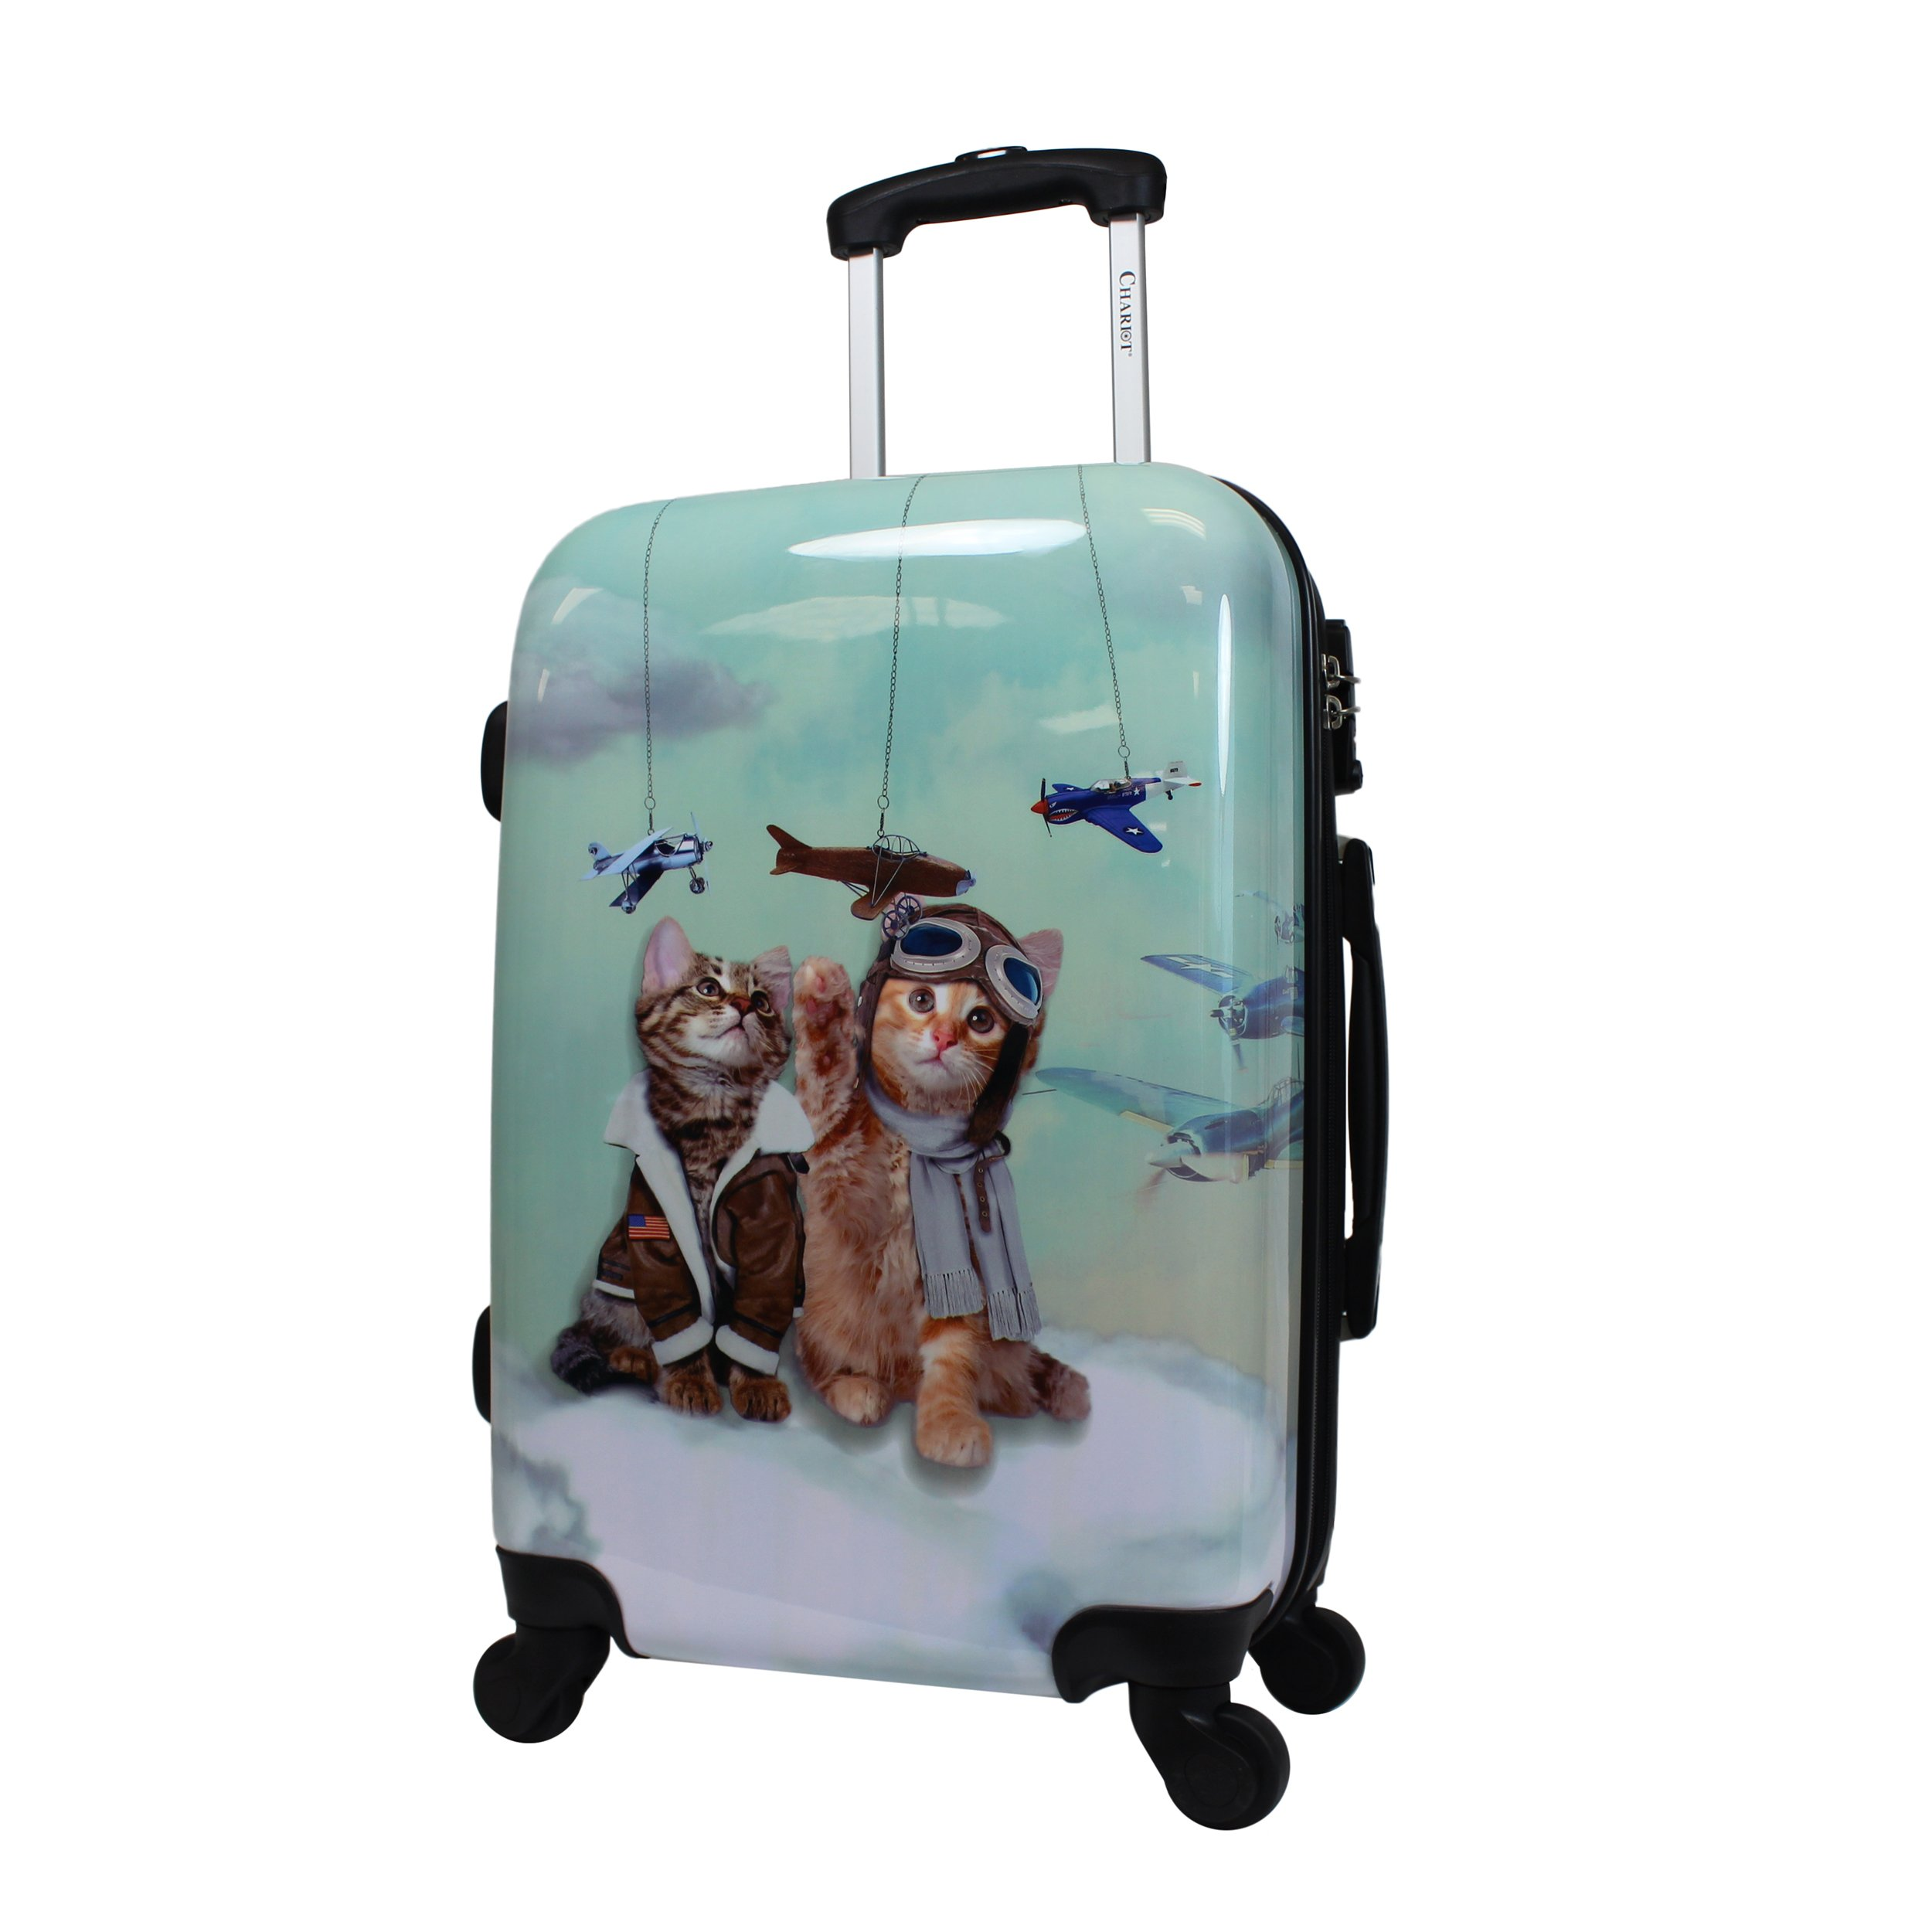 Chariot 20'' Lightweight Spinner Carry-on Upright Suitcase - Cat Pilots